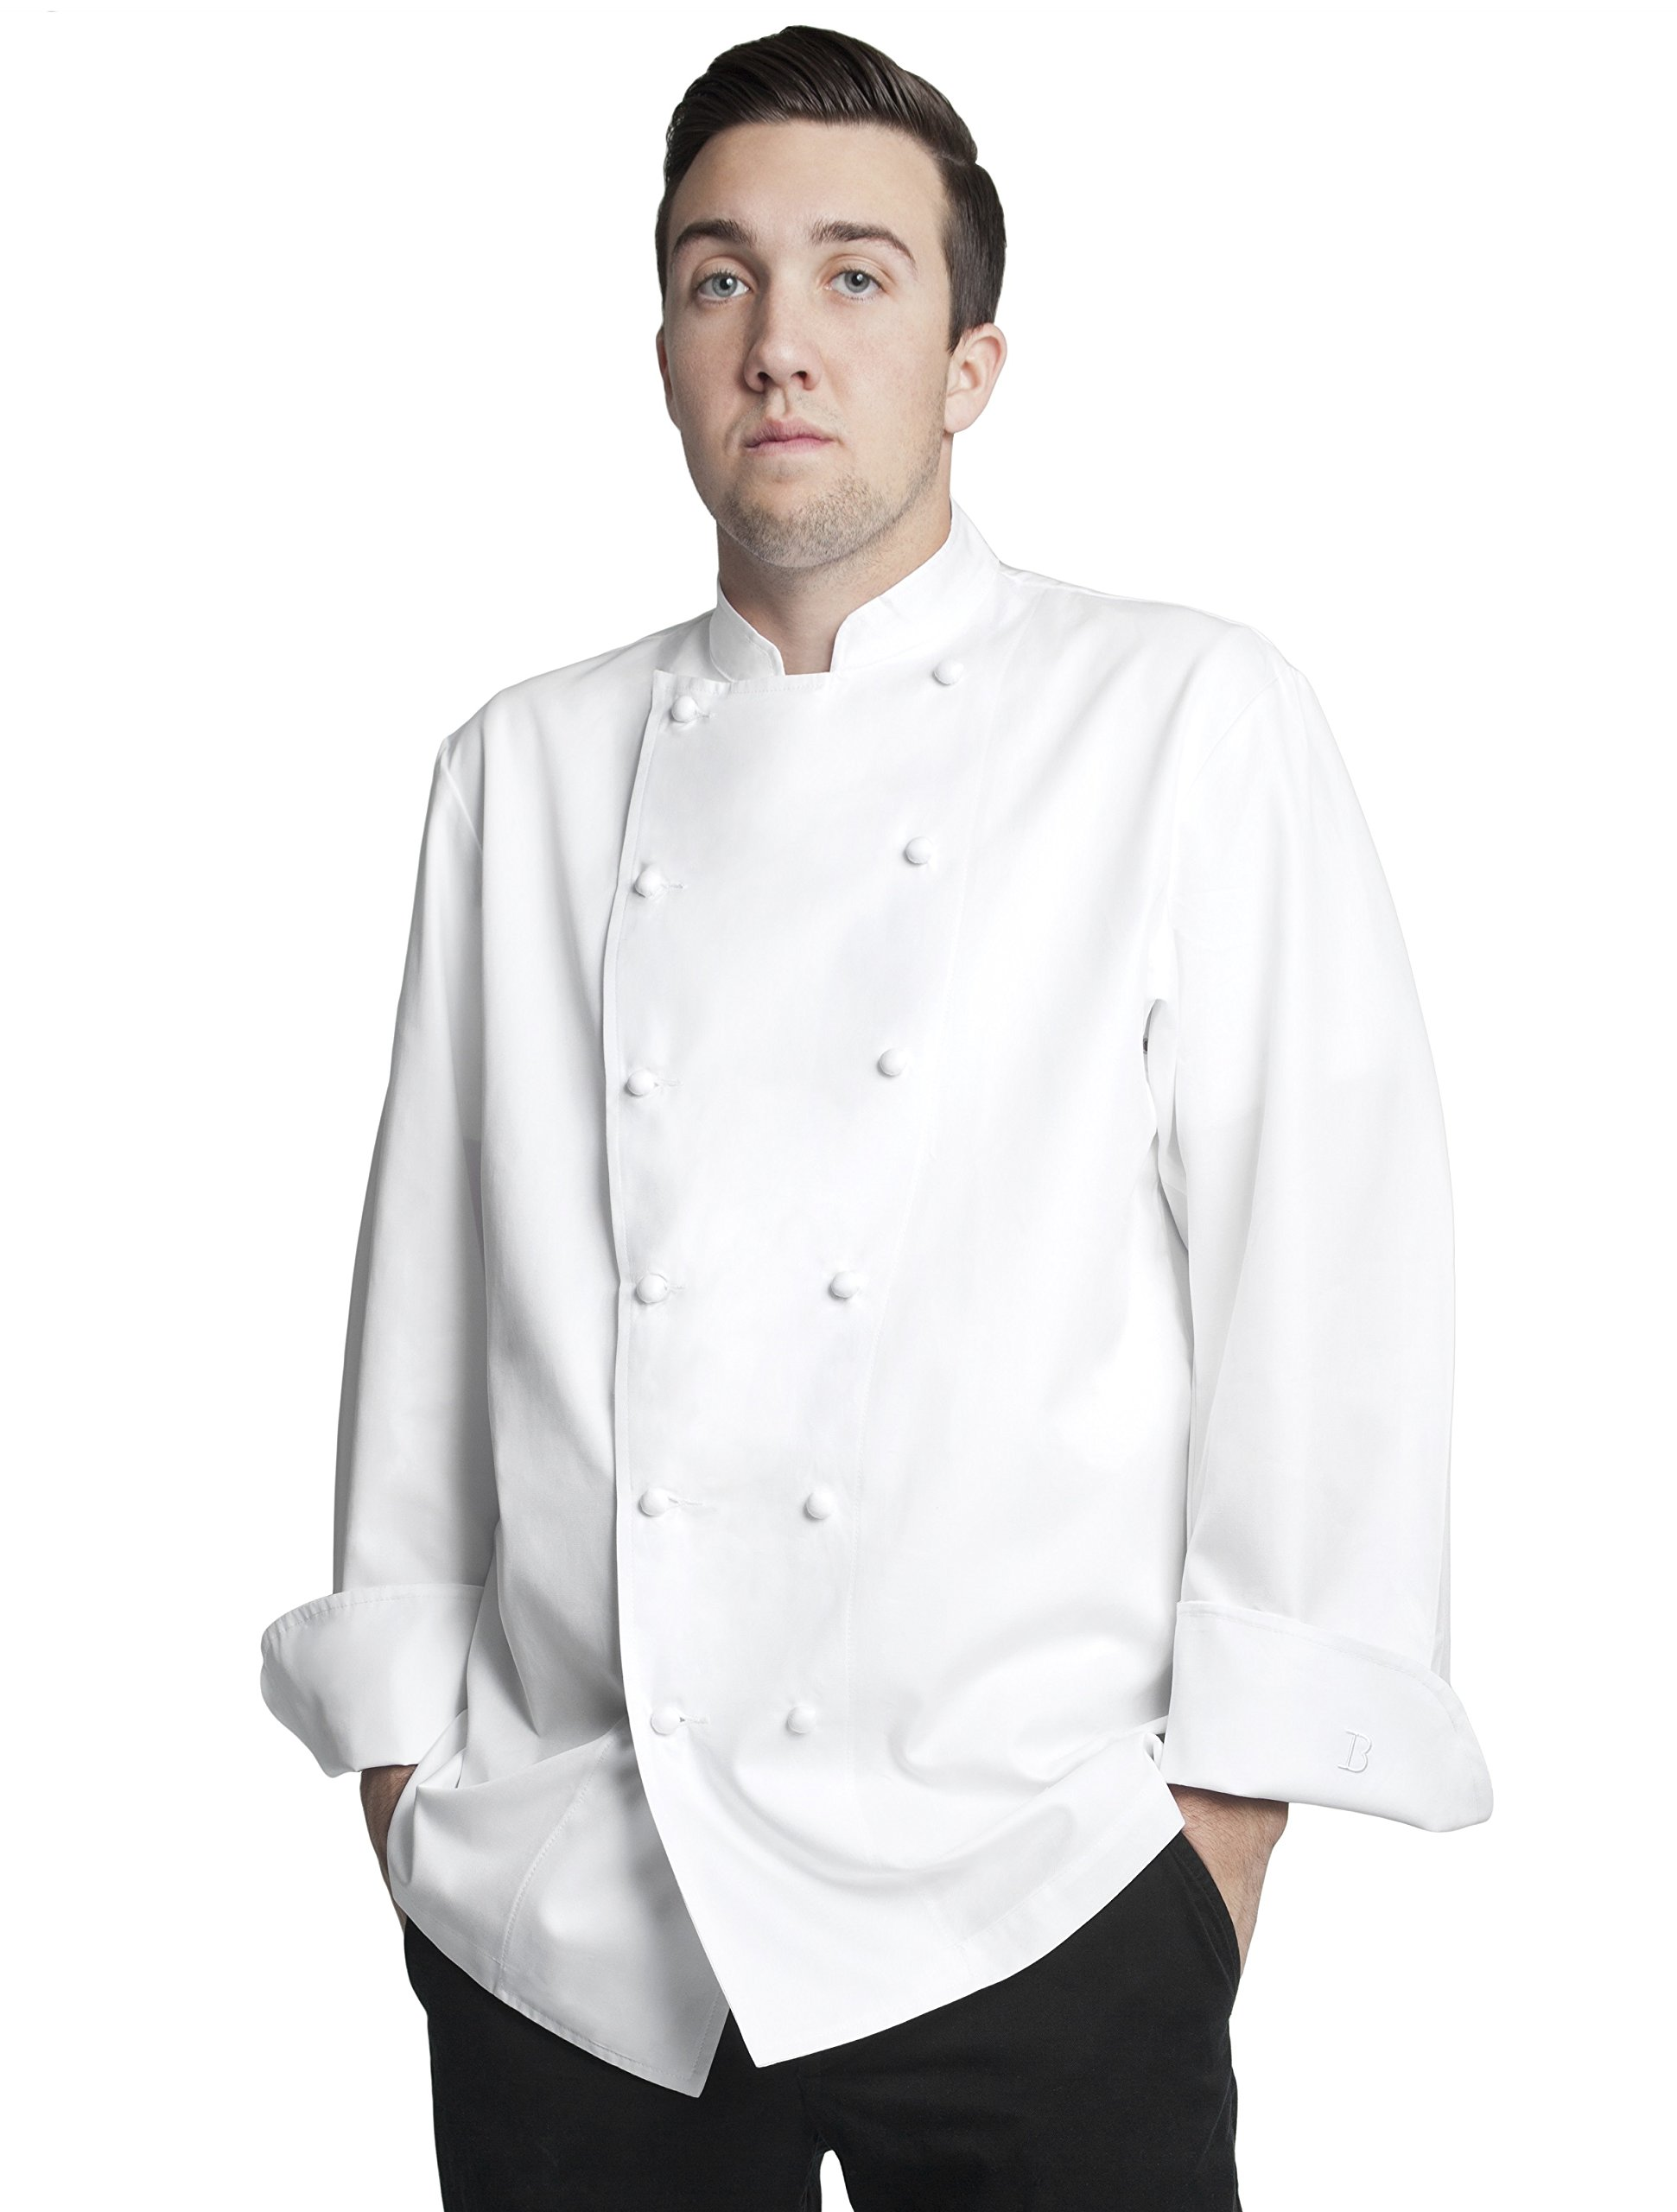 Bragard Men's Grand Chef Jacket Without Pocket 40 White by Bragard